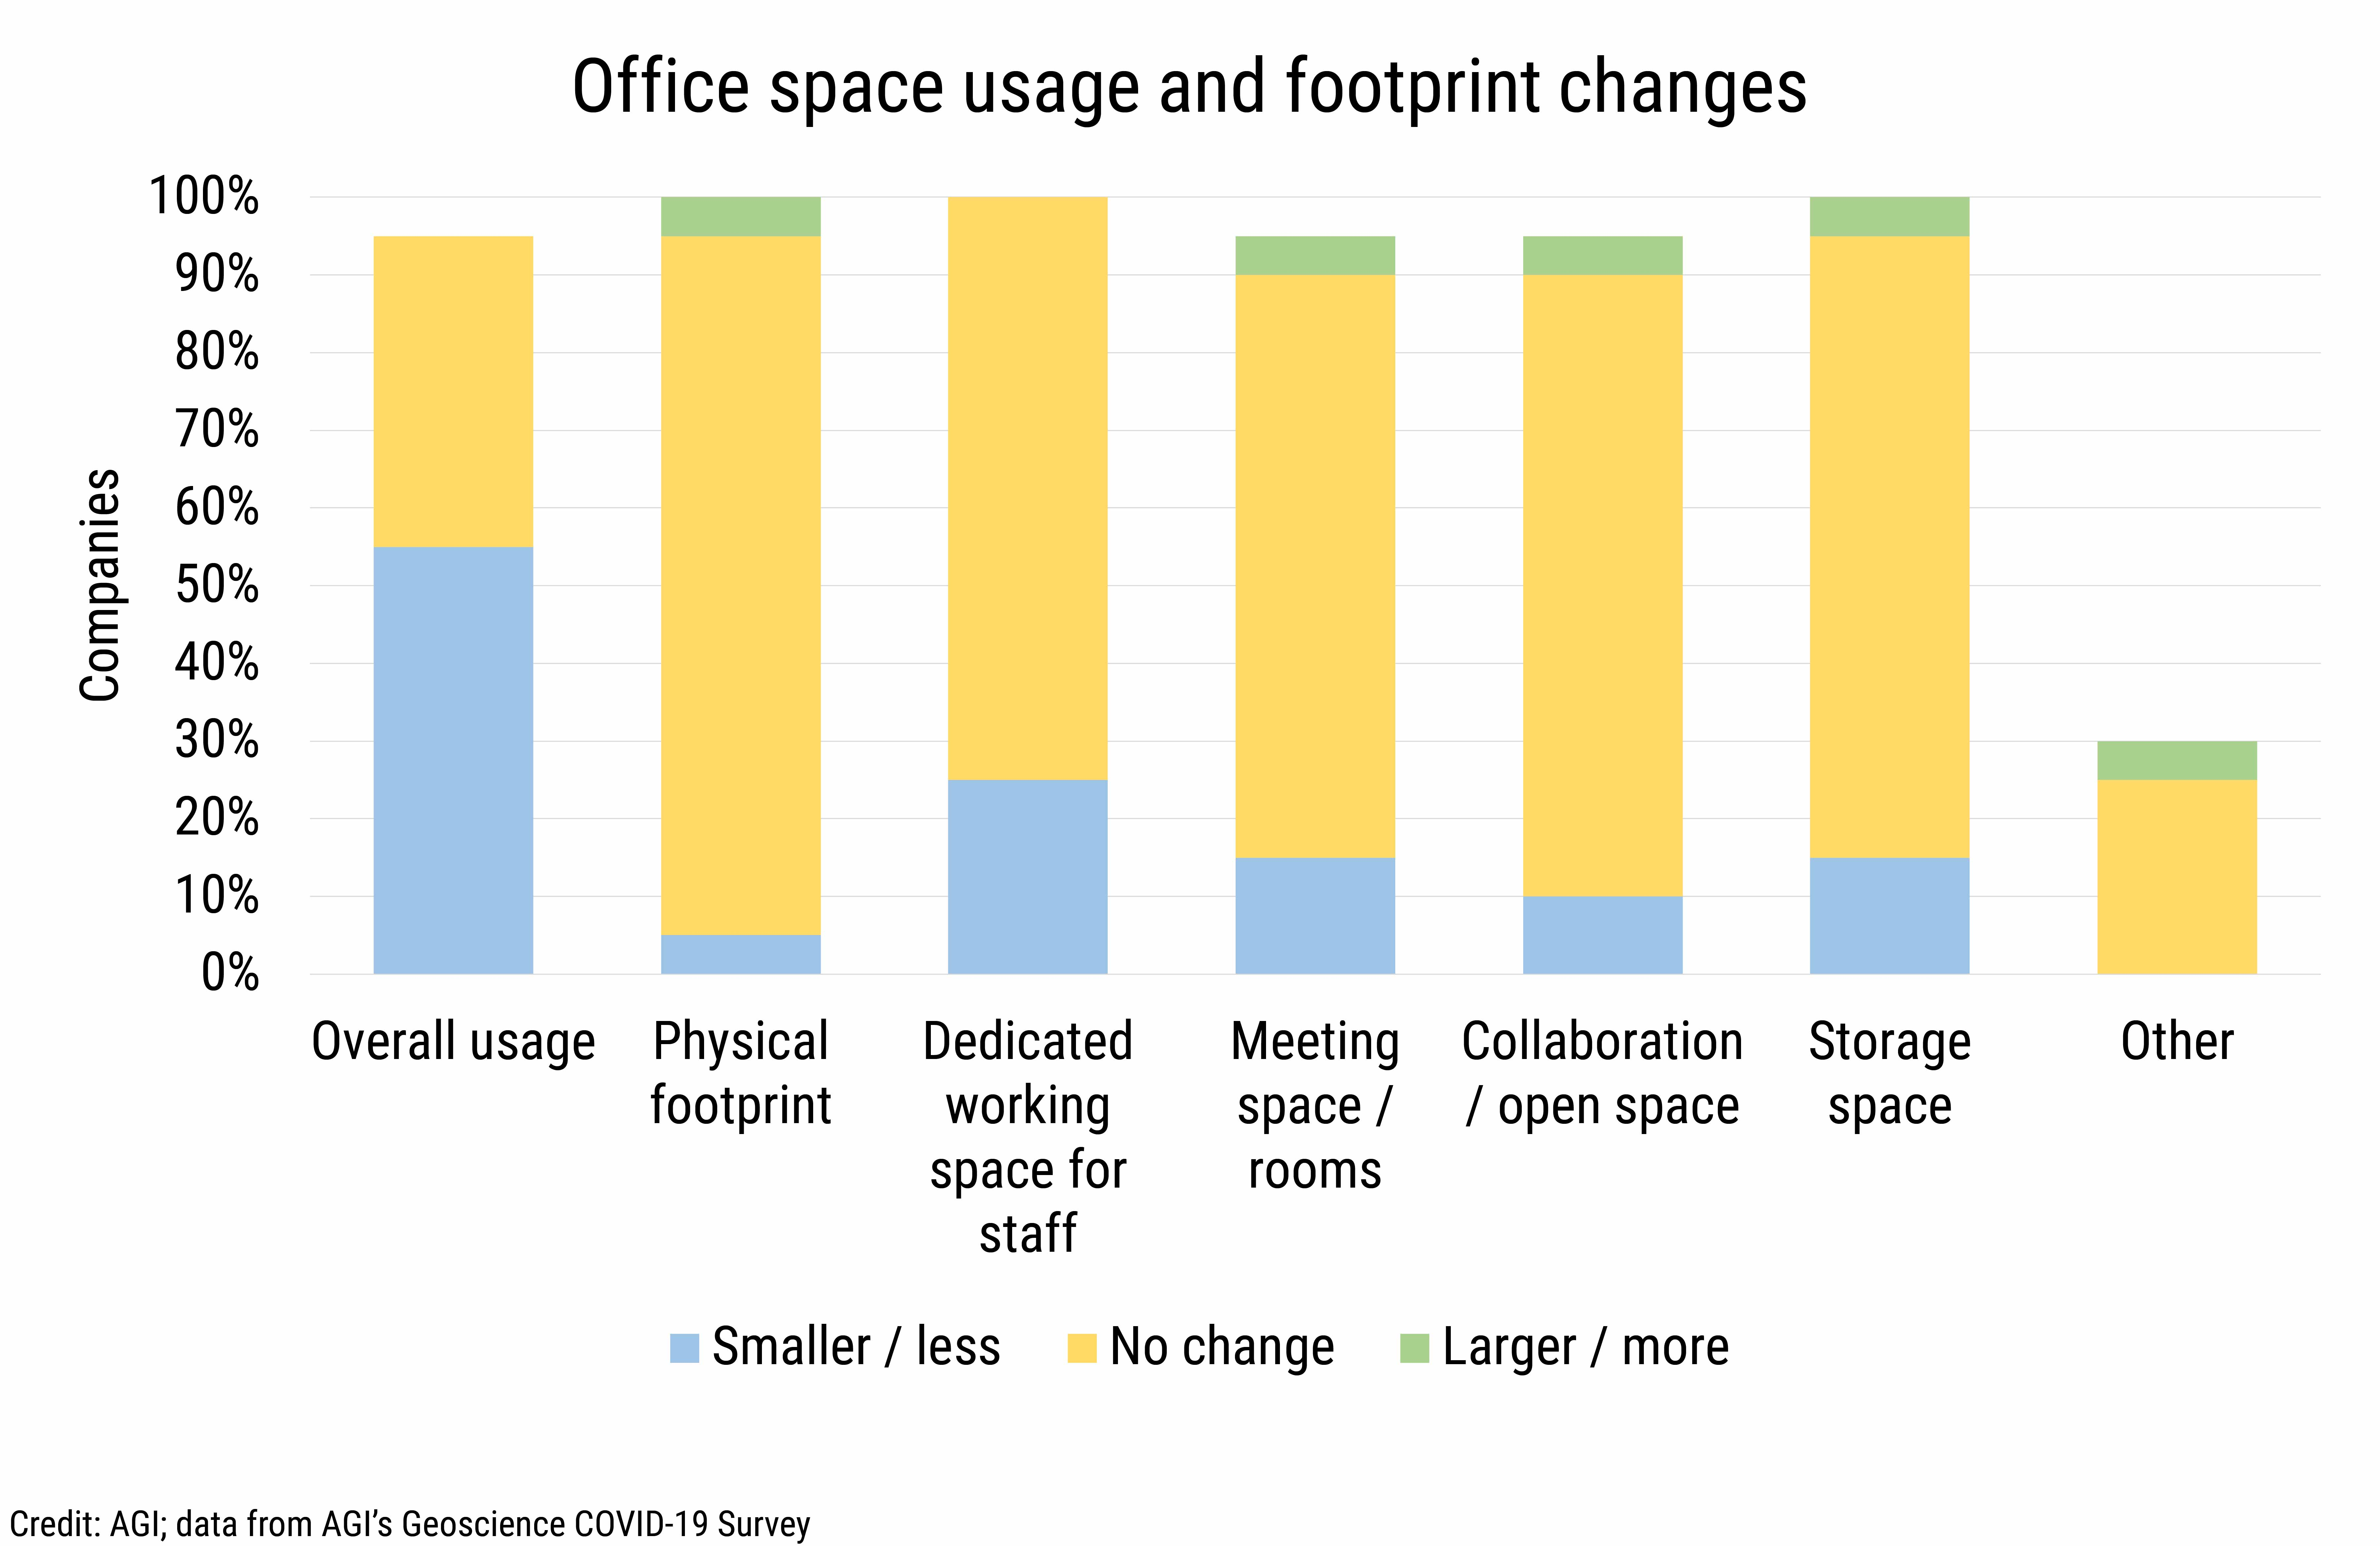 DB_2021-004_chart05: Office space usage and footprint changes (Credit: AGI; data from AGI's Geoscience COVID-19 Survey)